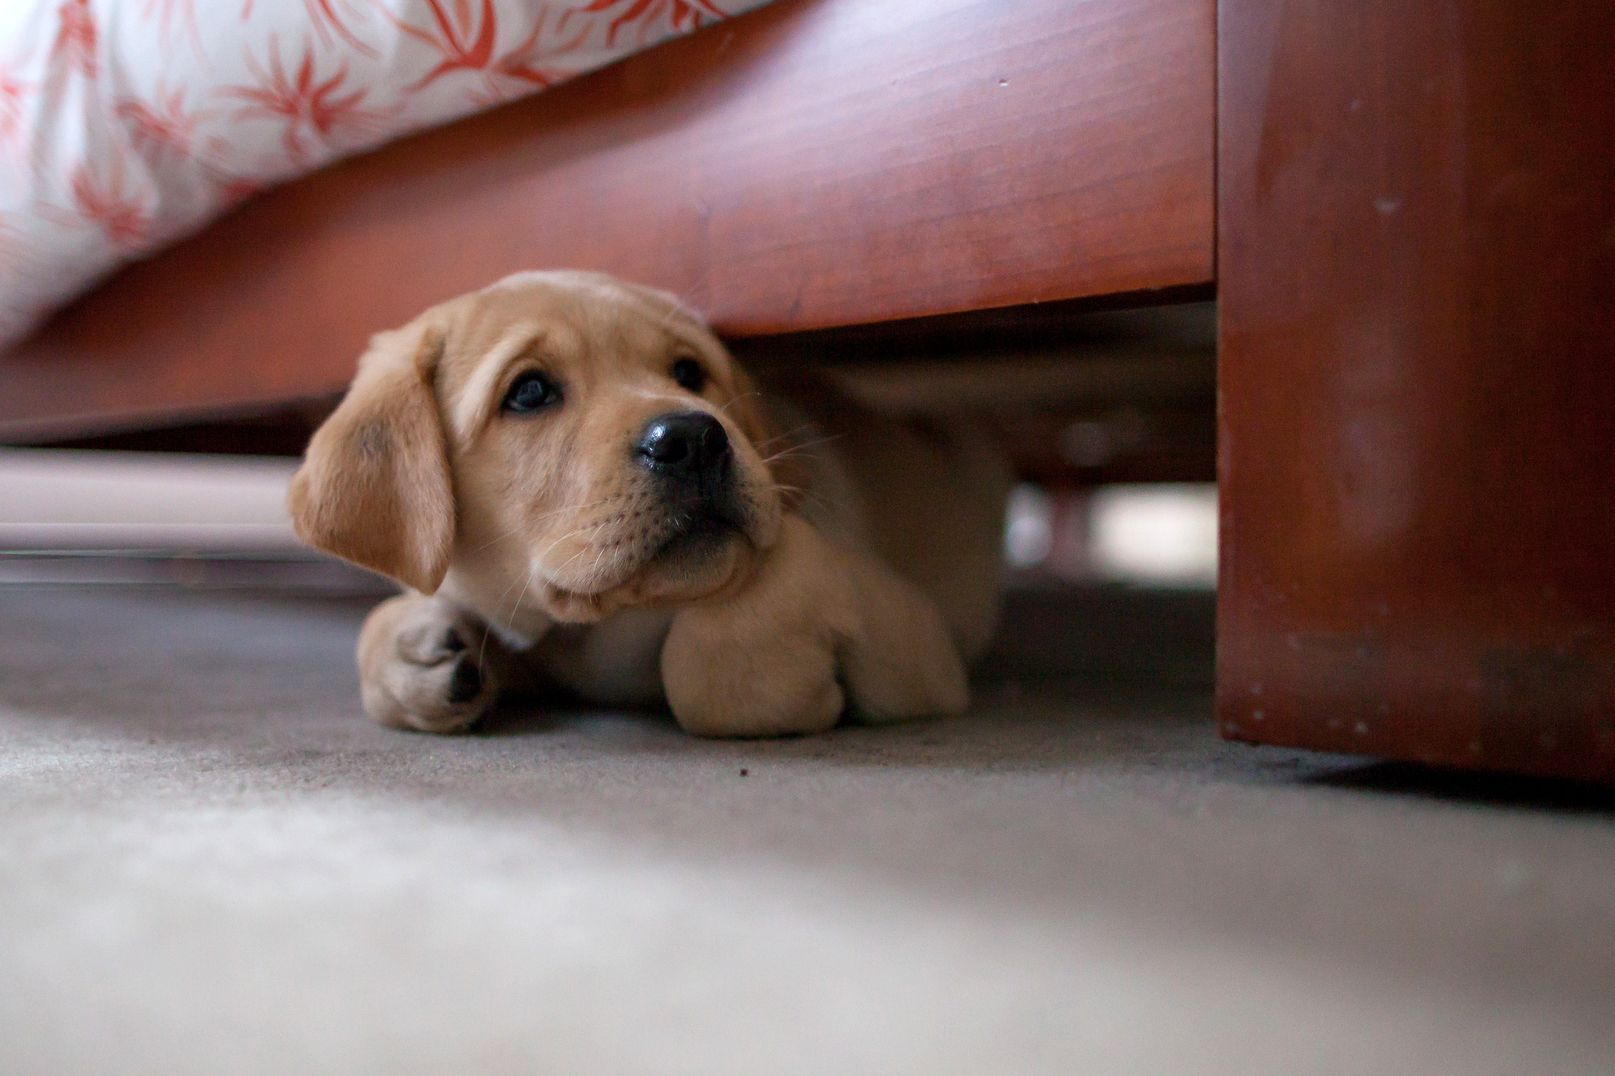 scared-puppy-GettyImages-164154580-577182243df78cb62c967b53